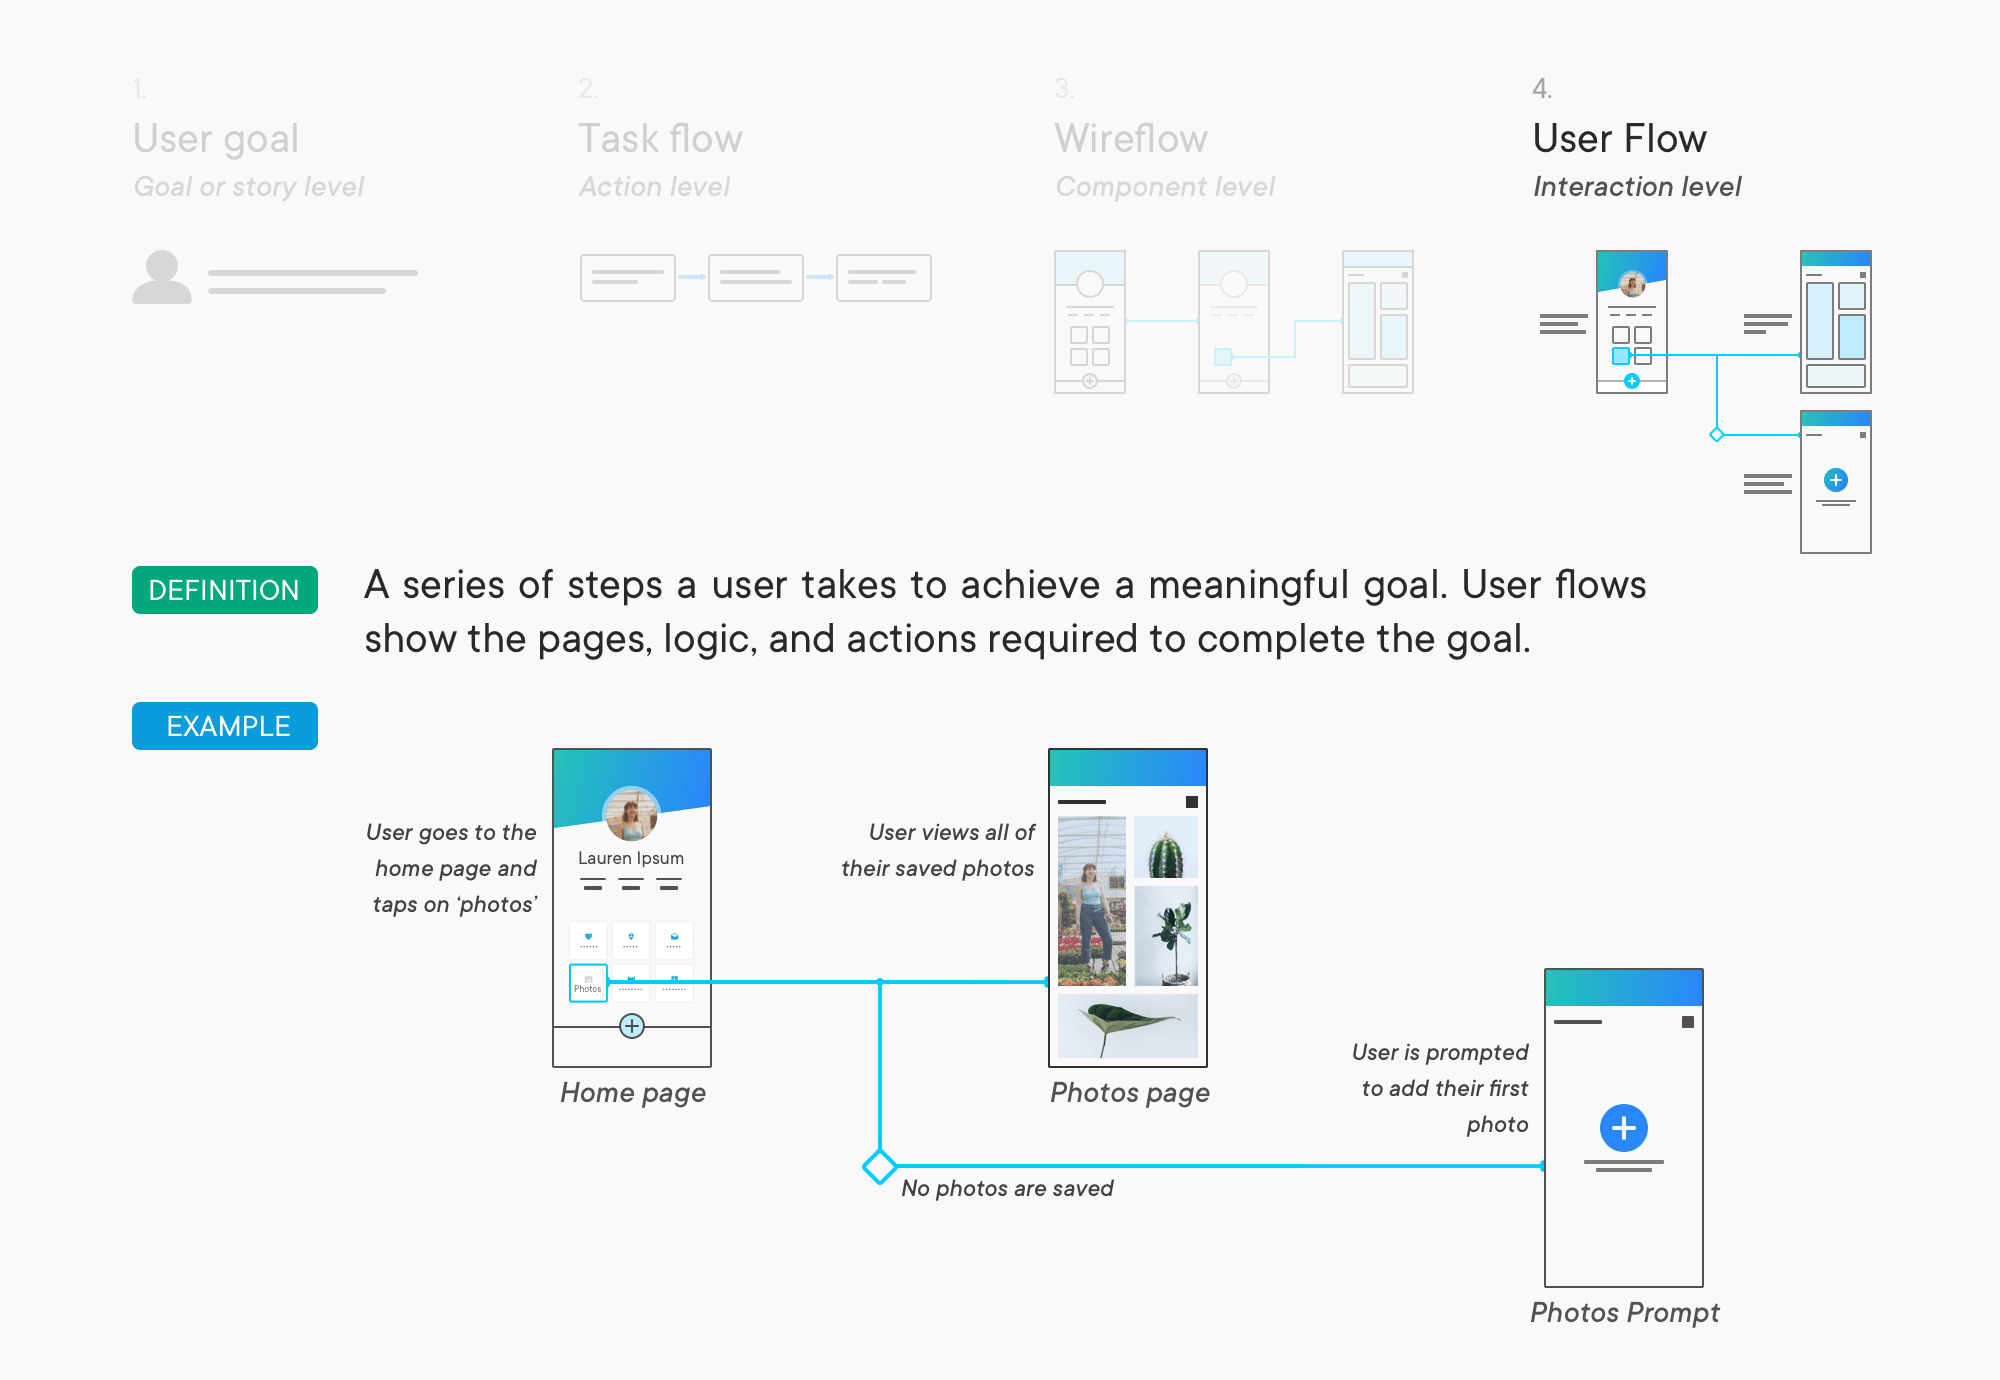 like hi-fi designs, high-fidelity user flows are used in the implementation  stages of a design  it helps a lot, but takes work